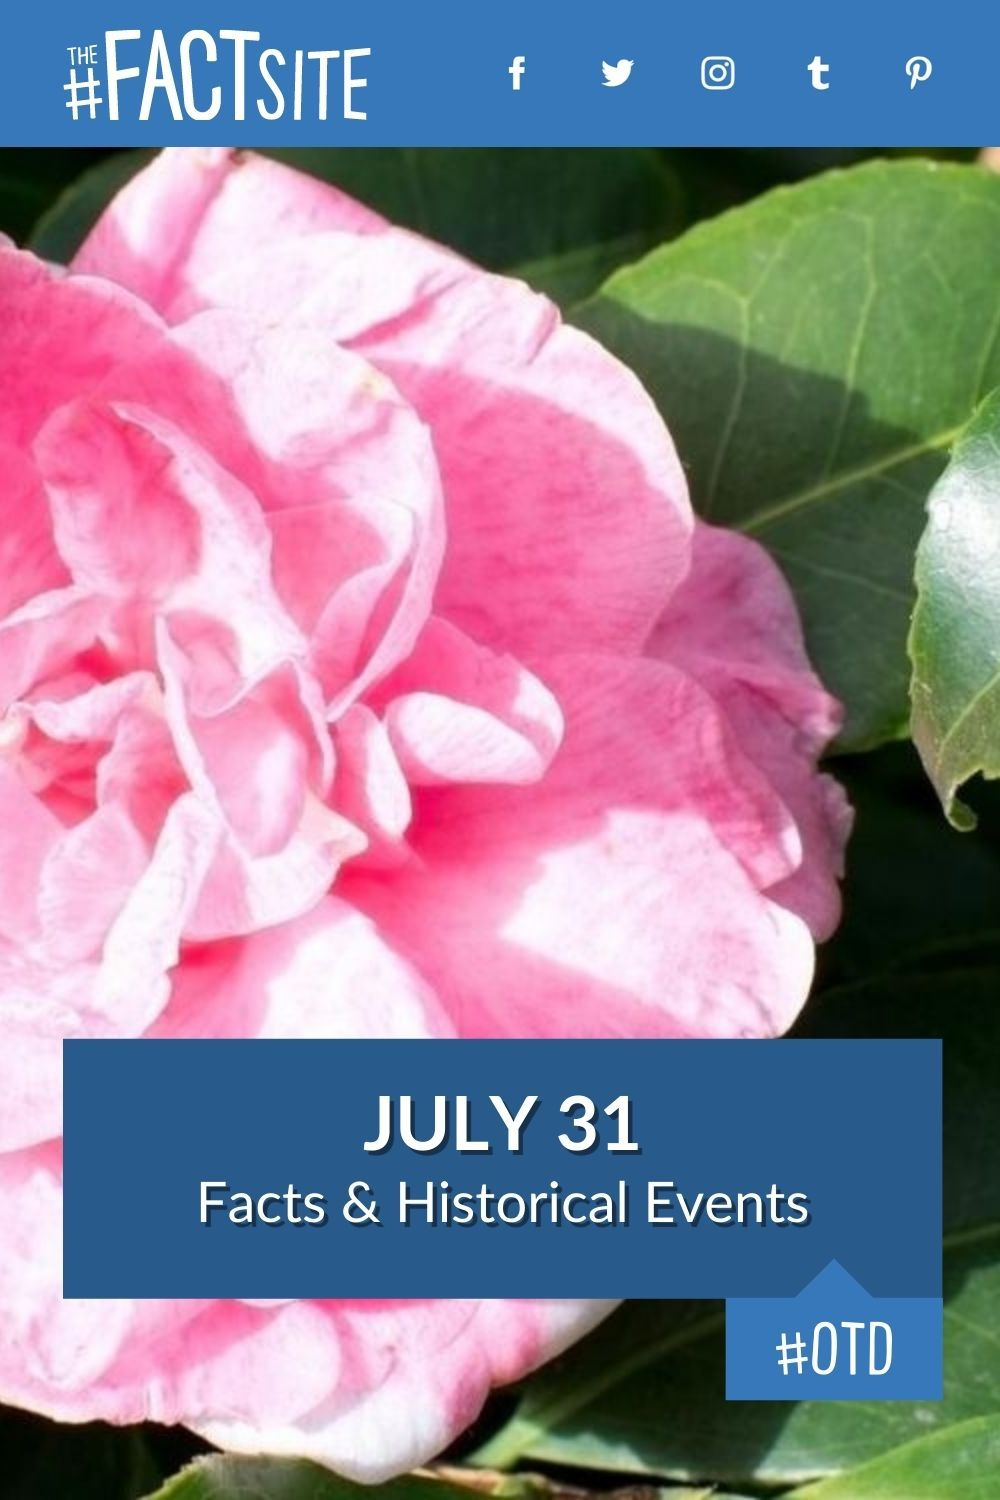 Facts & Historic Events That Happened on July 31